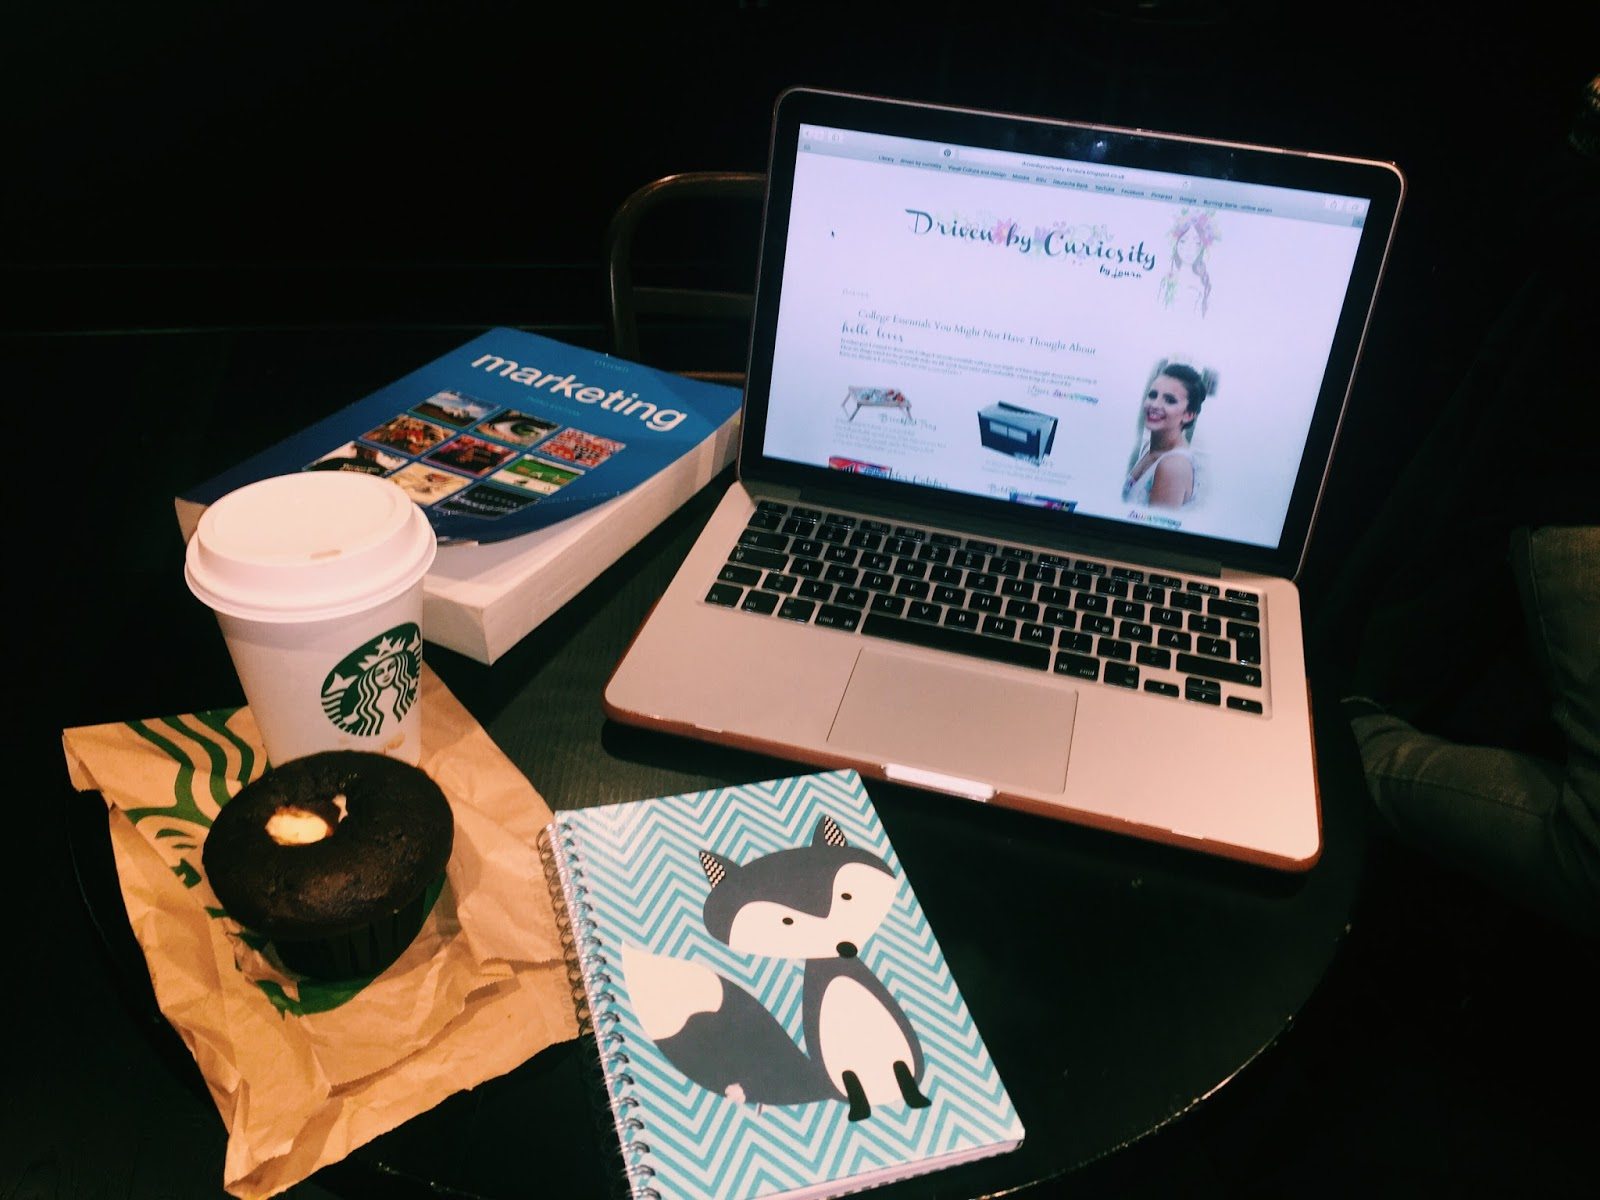 Essentials for studying at Starbucks